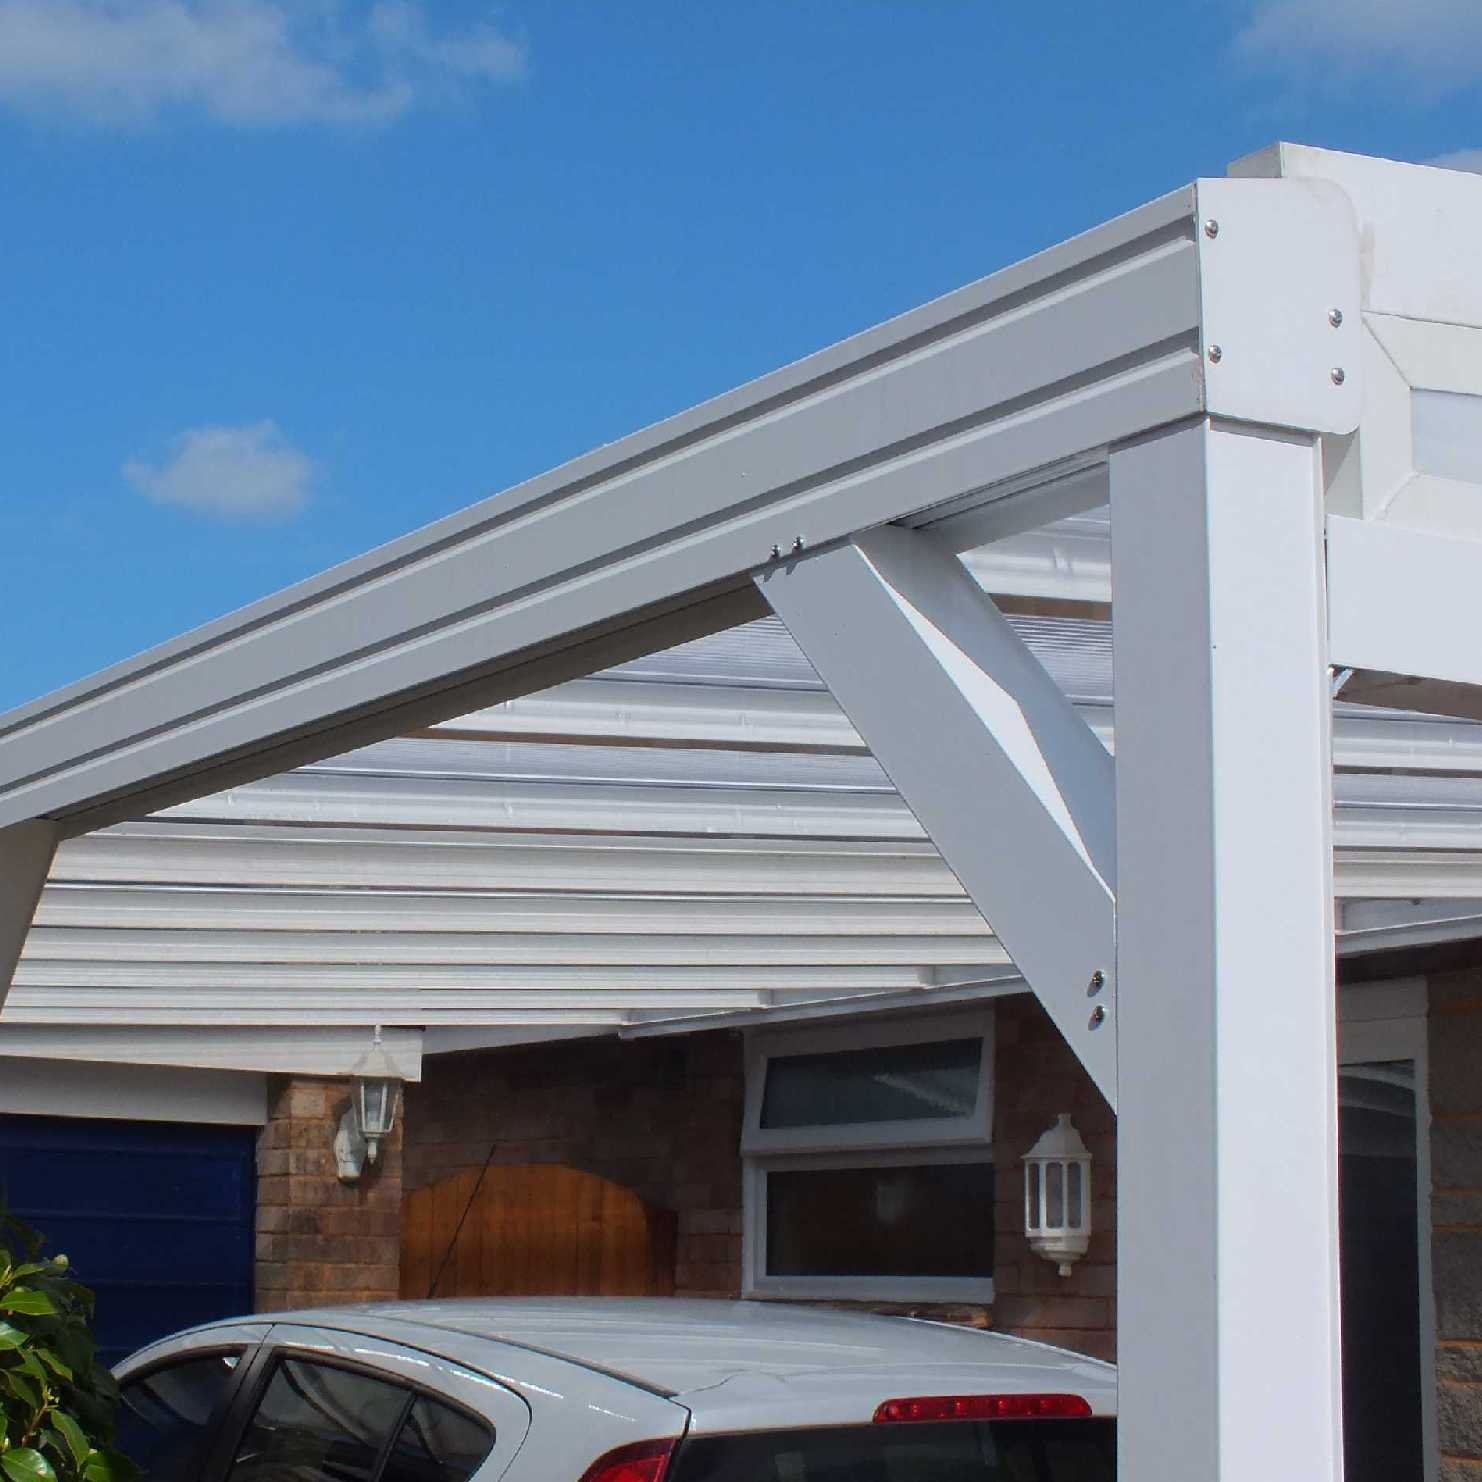 Great deals on Omega Smart White Lean-To Canopy with 16mm Polycarbonate Glazing - 5.2m (W) x 2.0m (P), (3) Supporting Posts